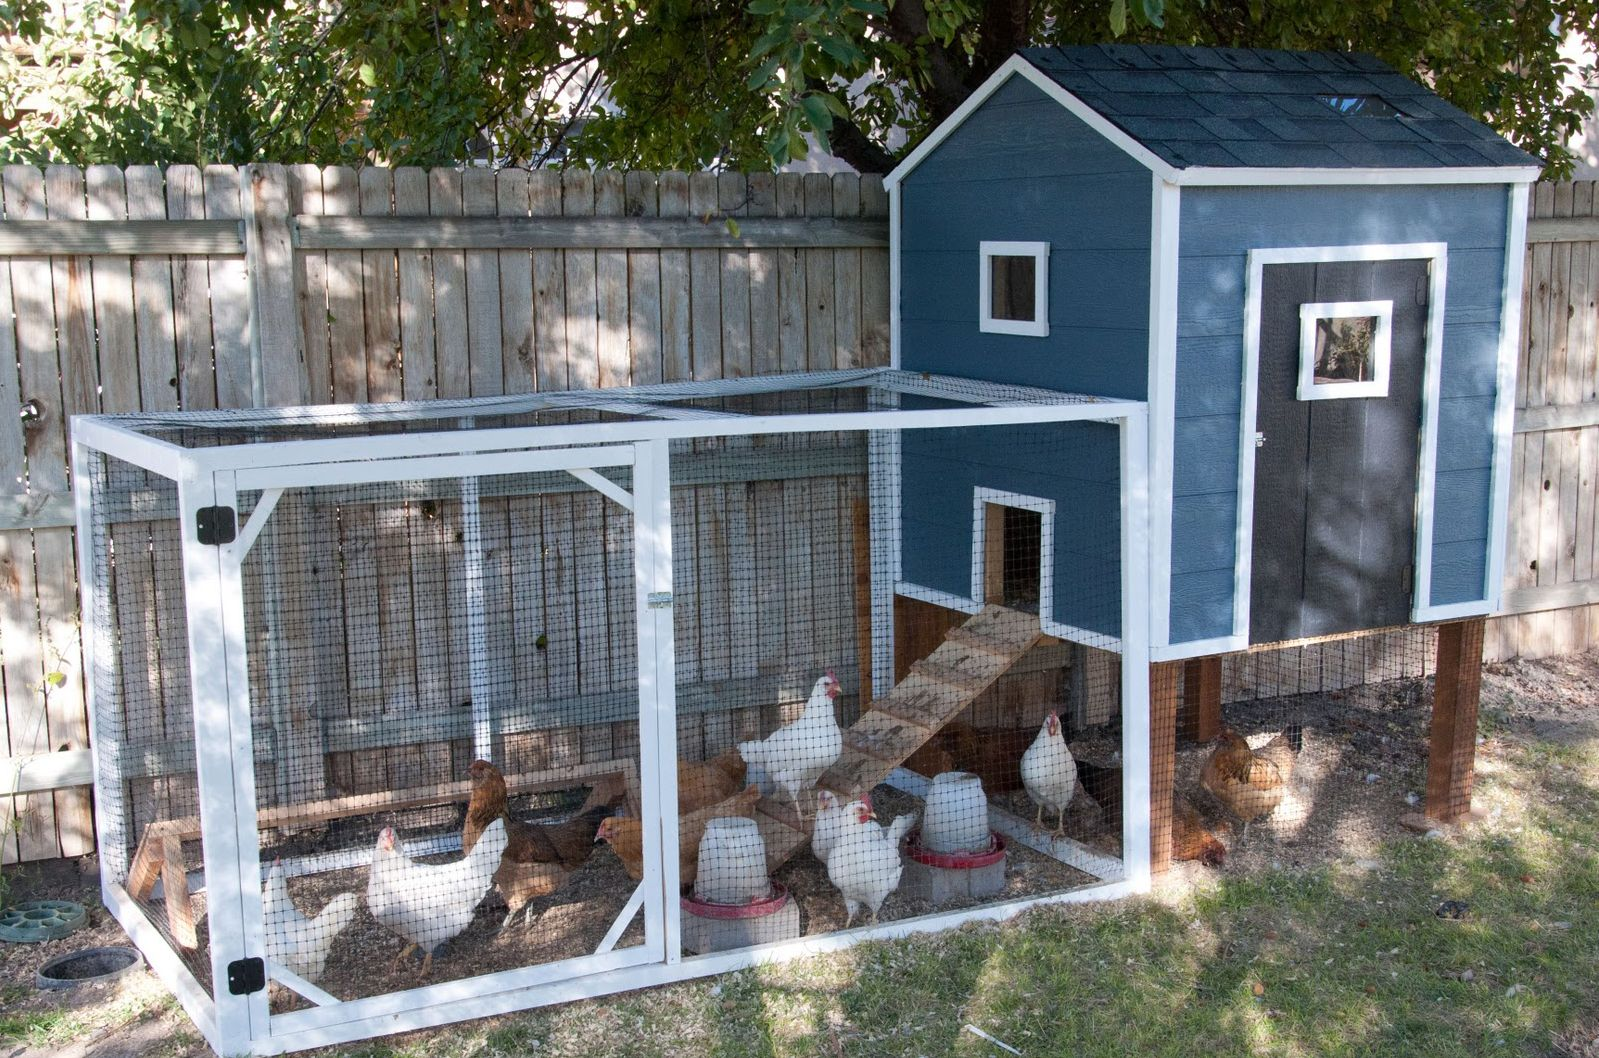 30 diy chicken coops you need in your backyard diy chicken coop30 diy chicken coops you need in your backyard diy chicken coop plans chicken coop plans